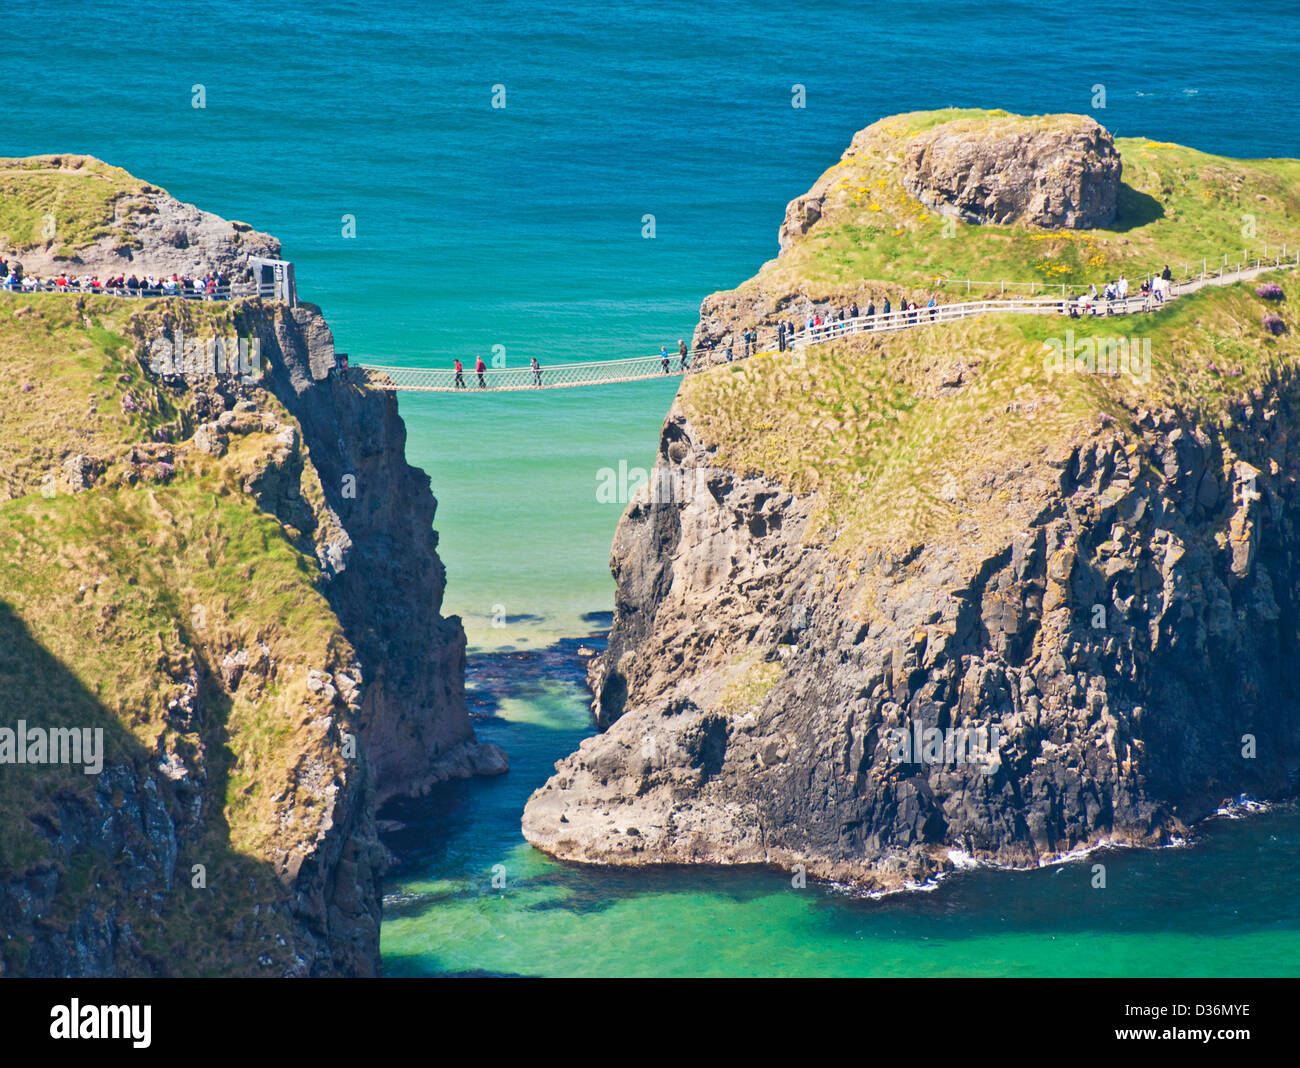 Tourists crossing the Carrick a rede rope bridge to Carrick island Ballycastle County Antrim Northern Ireland UK - Stock Image